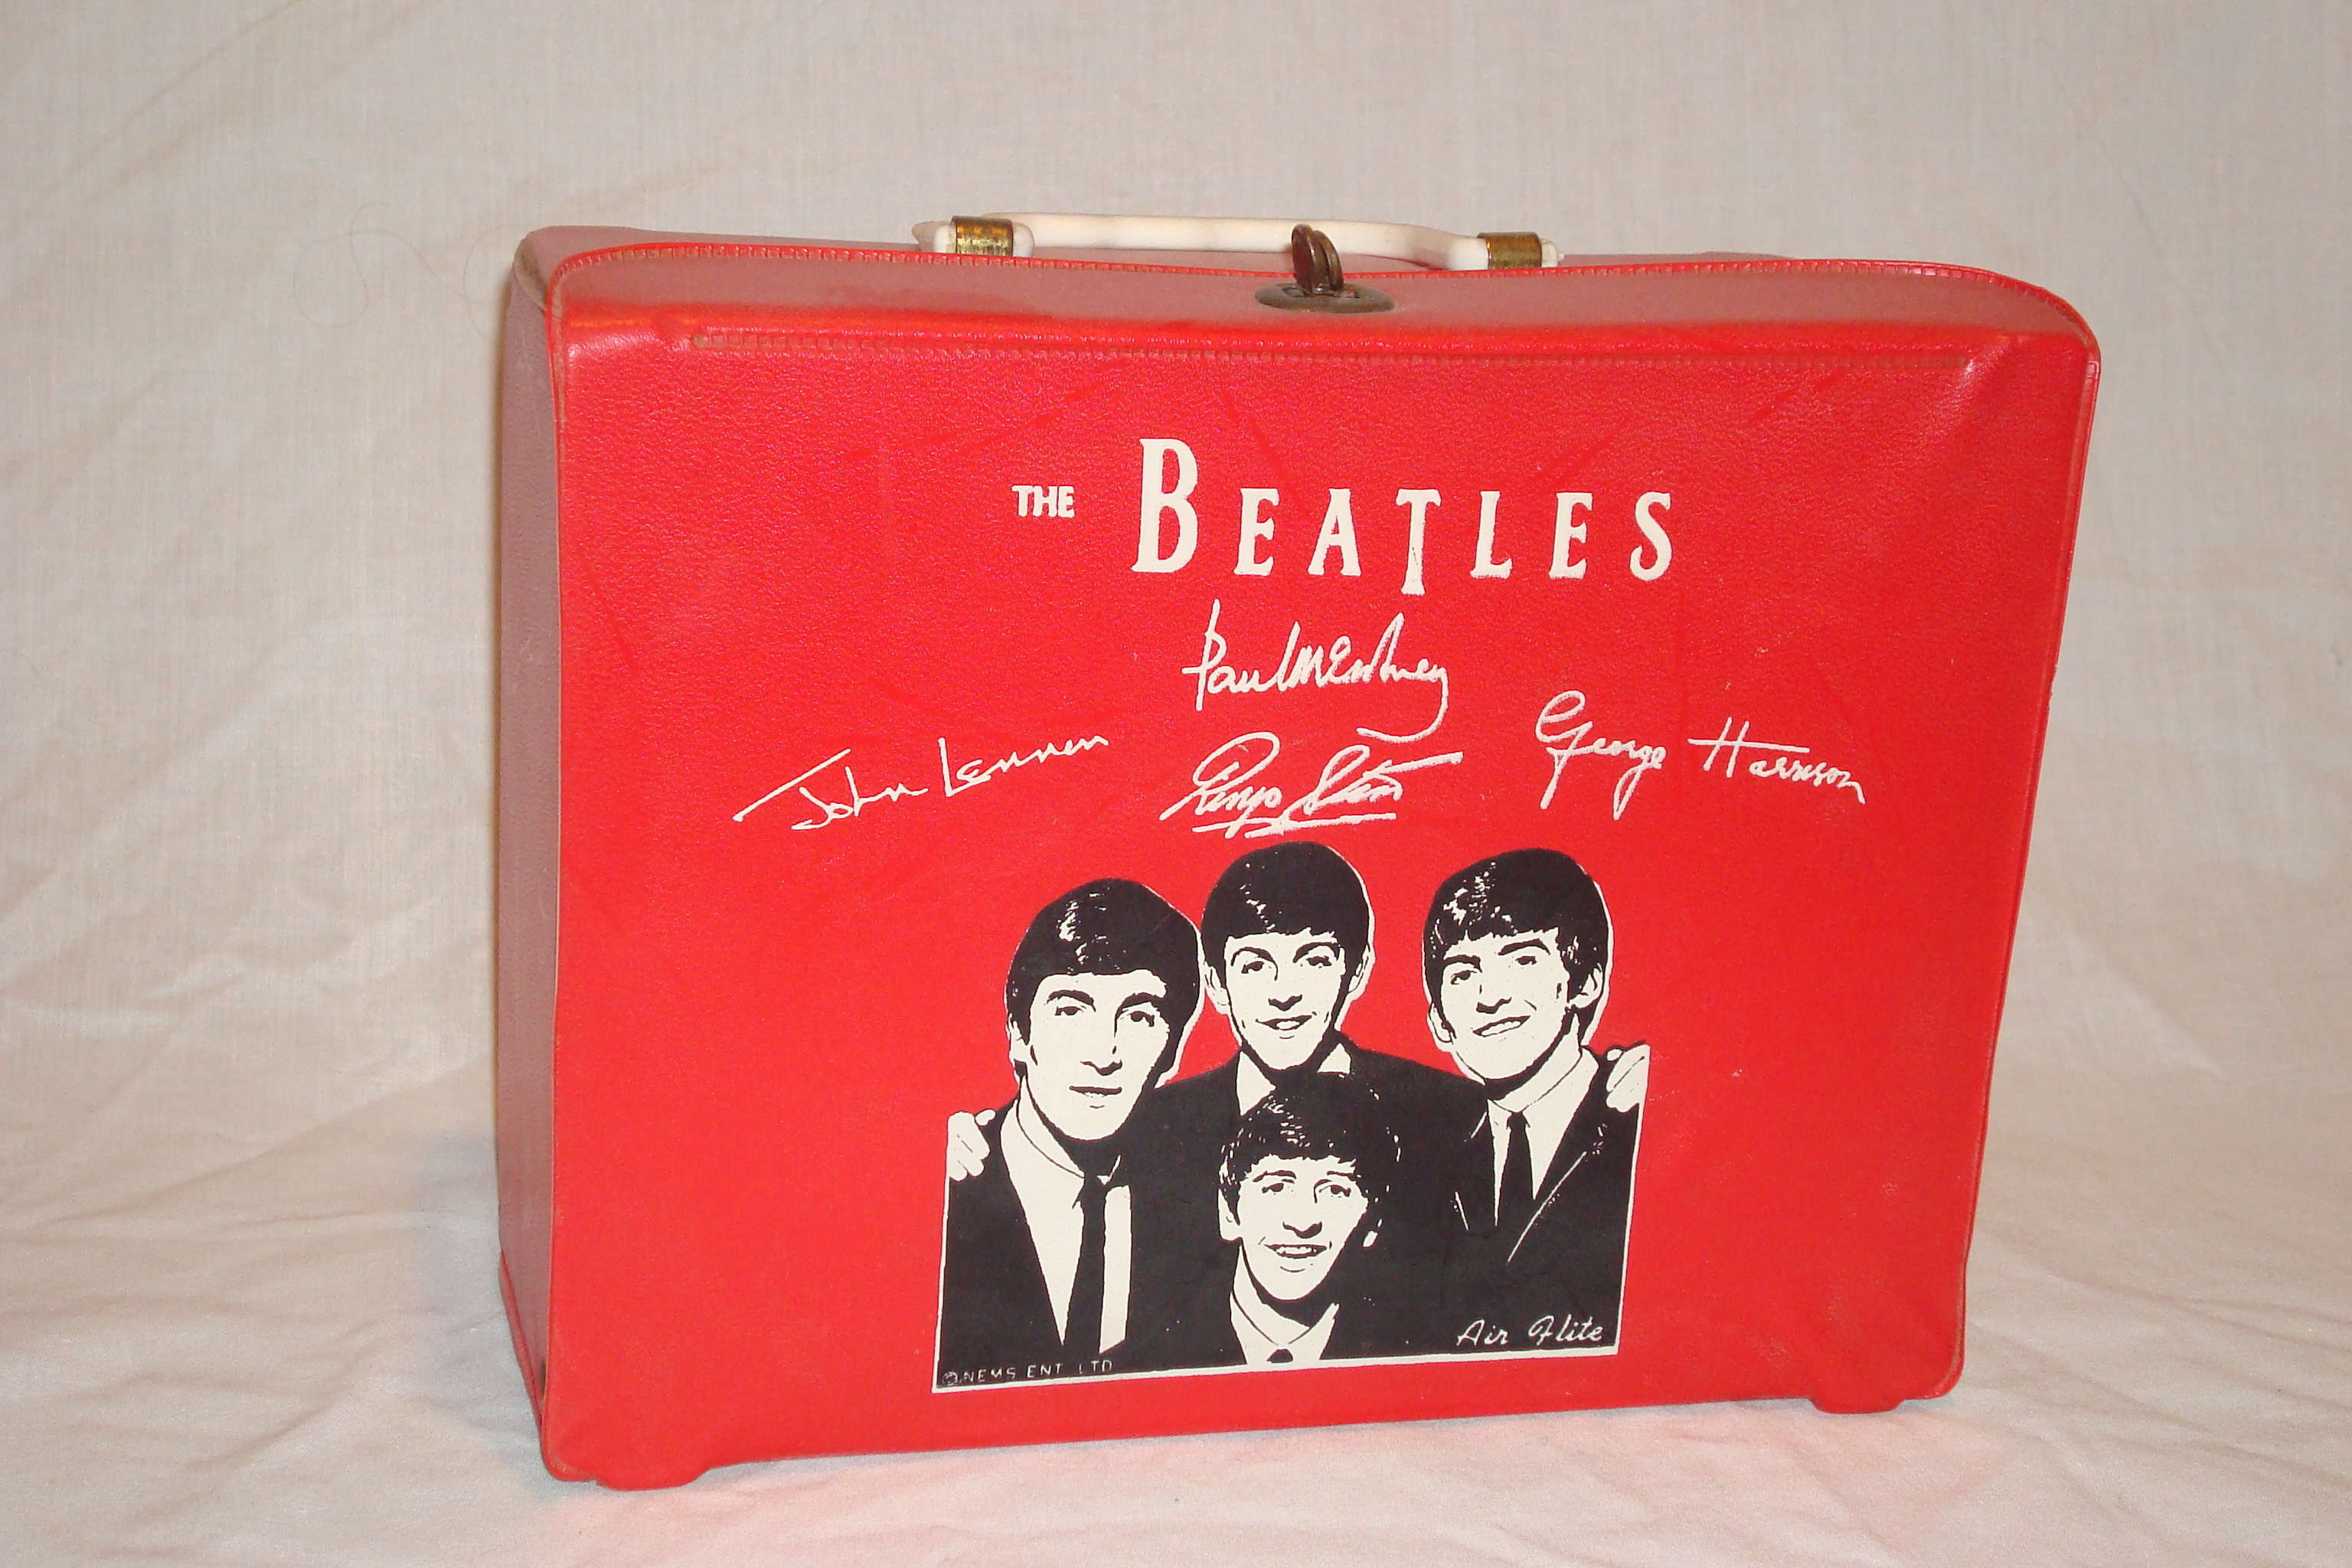 Beatles Airflite box 1964.JPG